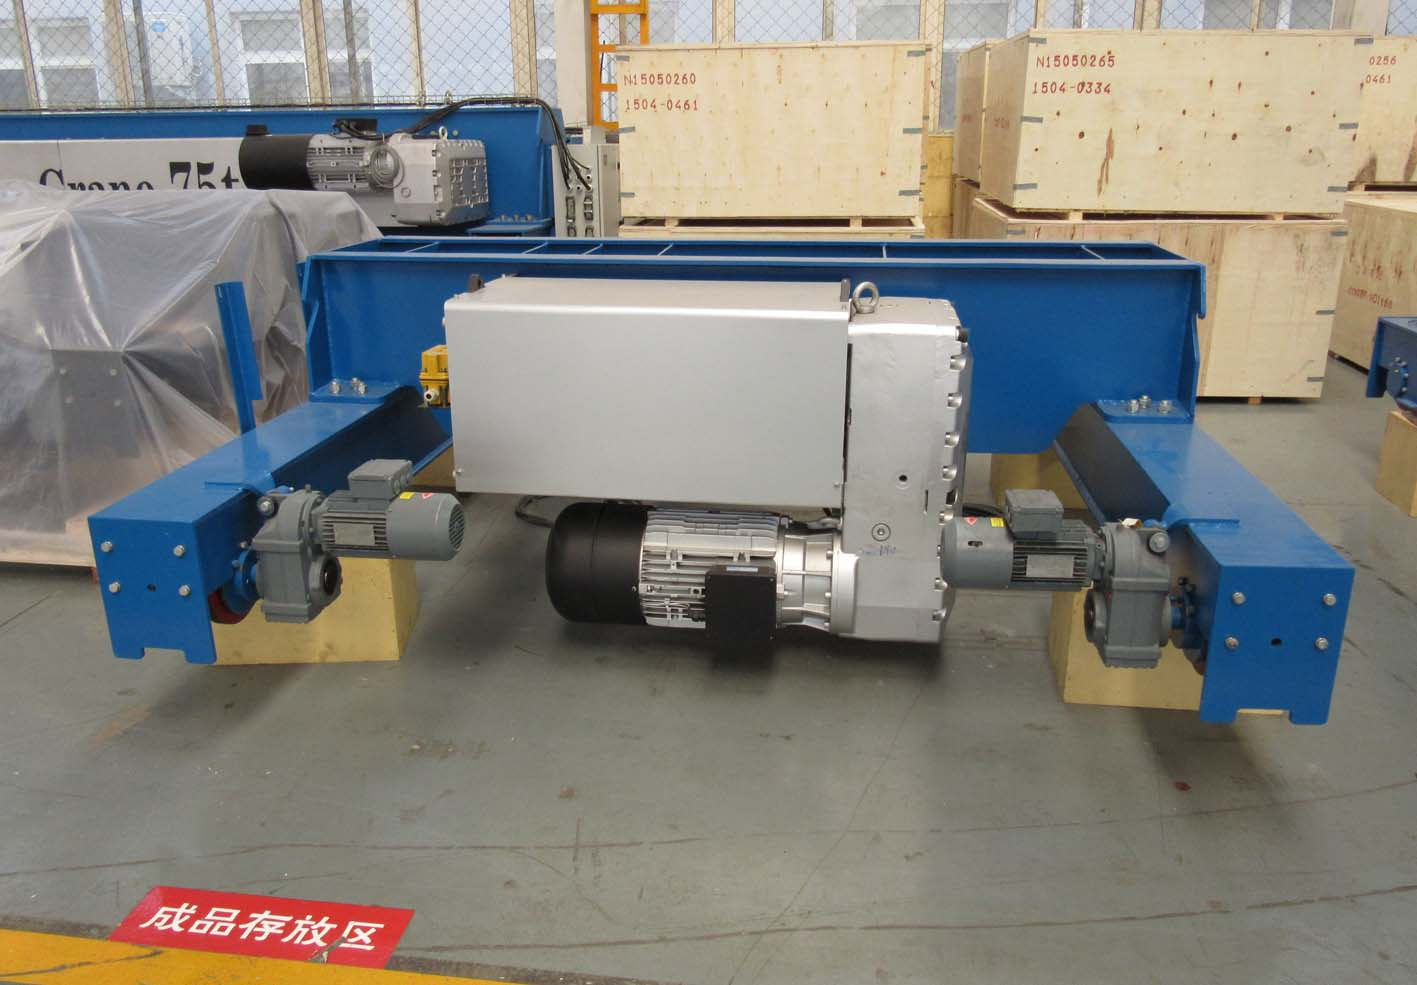 Double Hook Trolley for Double Girder Overhead Cranes